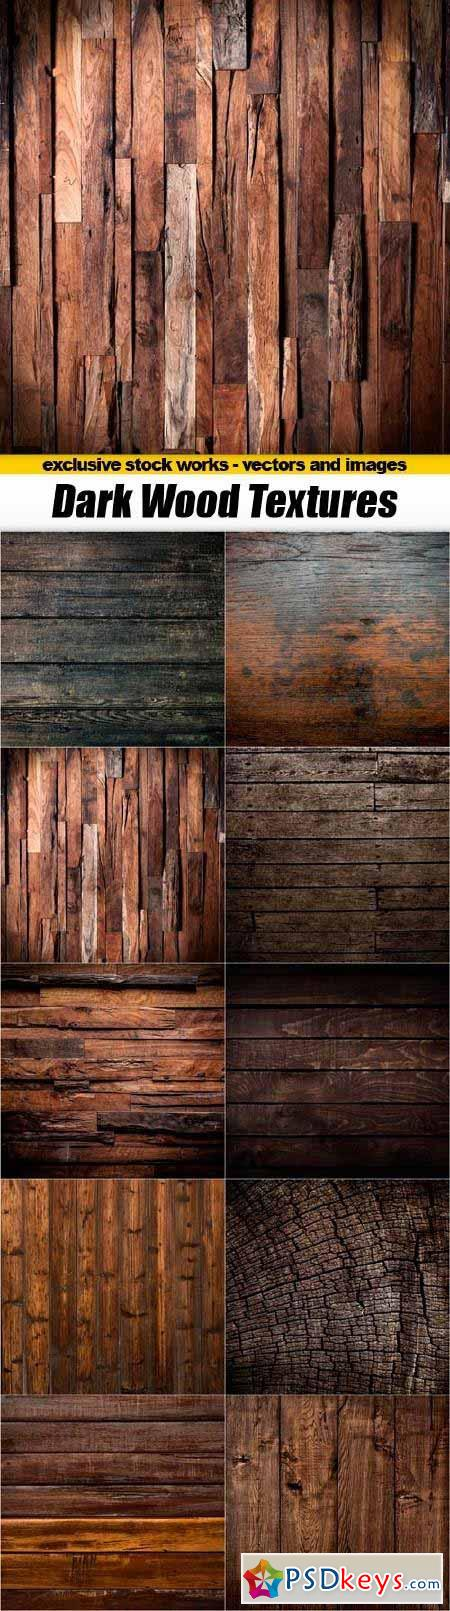 Dark Wood Texture Backgrounds - 10x JPEGs